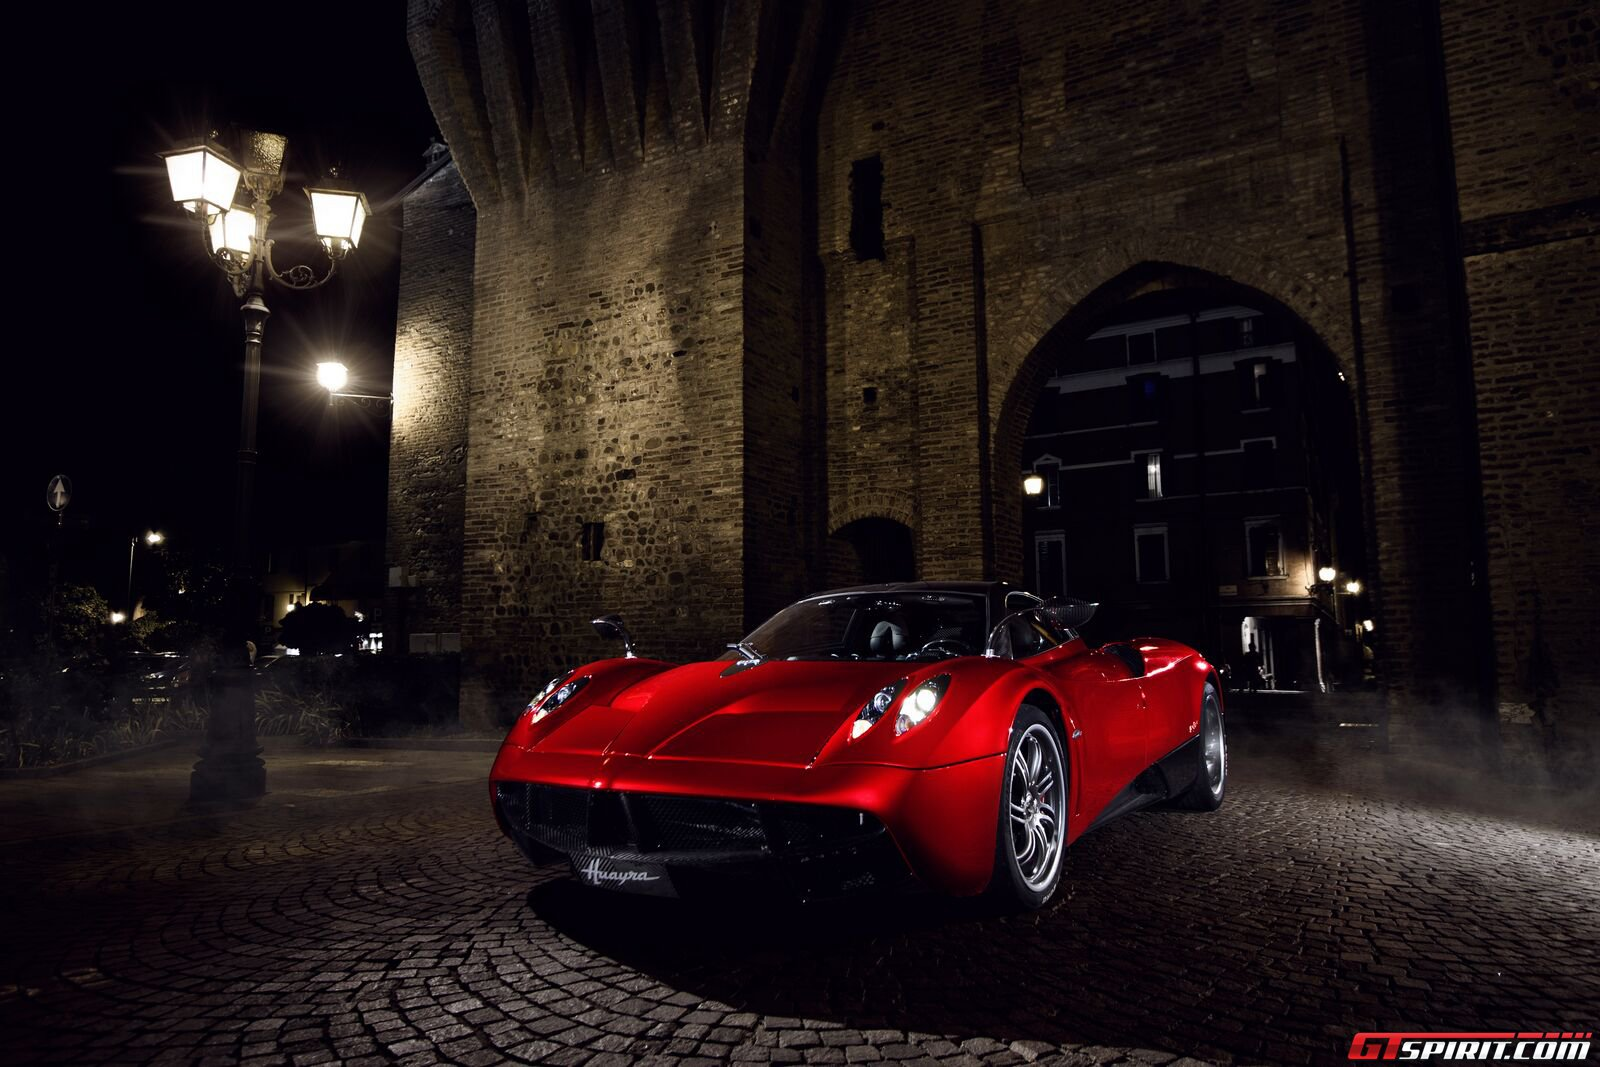 Pagani Huayra Wallpaper and Background Image | 1600x1067 ...